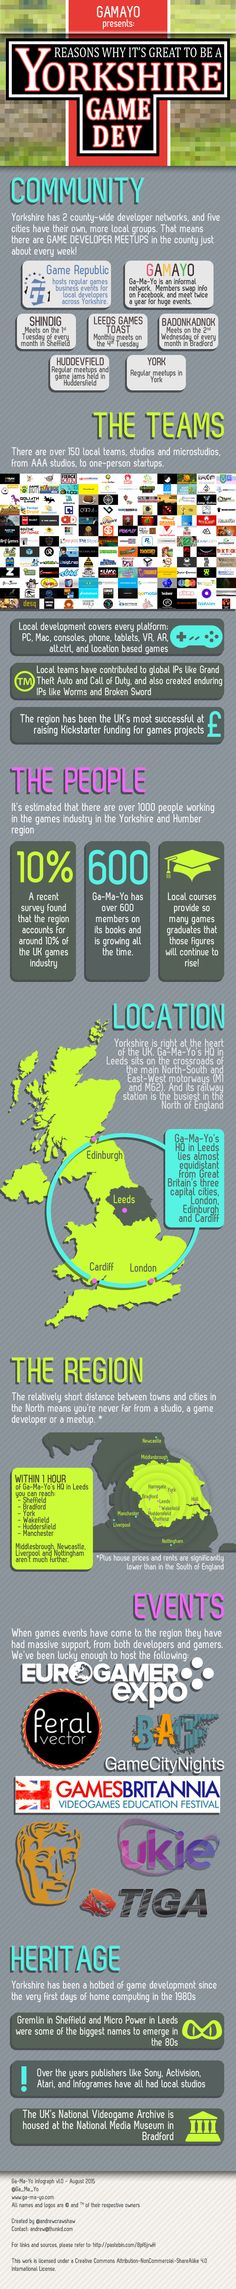 Yorkshire is a Hotbed for Game Developers Infographic #Games #VideoGames #Gamedev #Gaming #Gamayo #Yorkshire